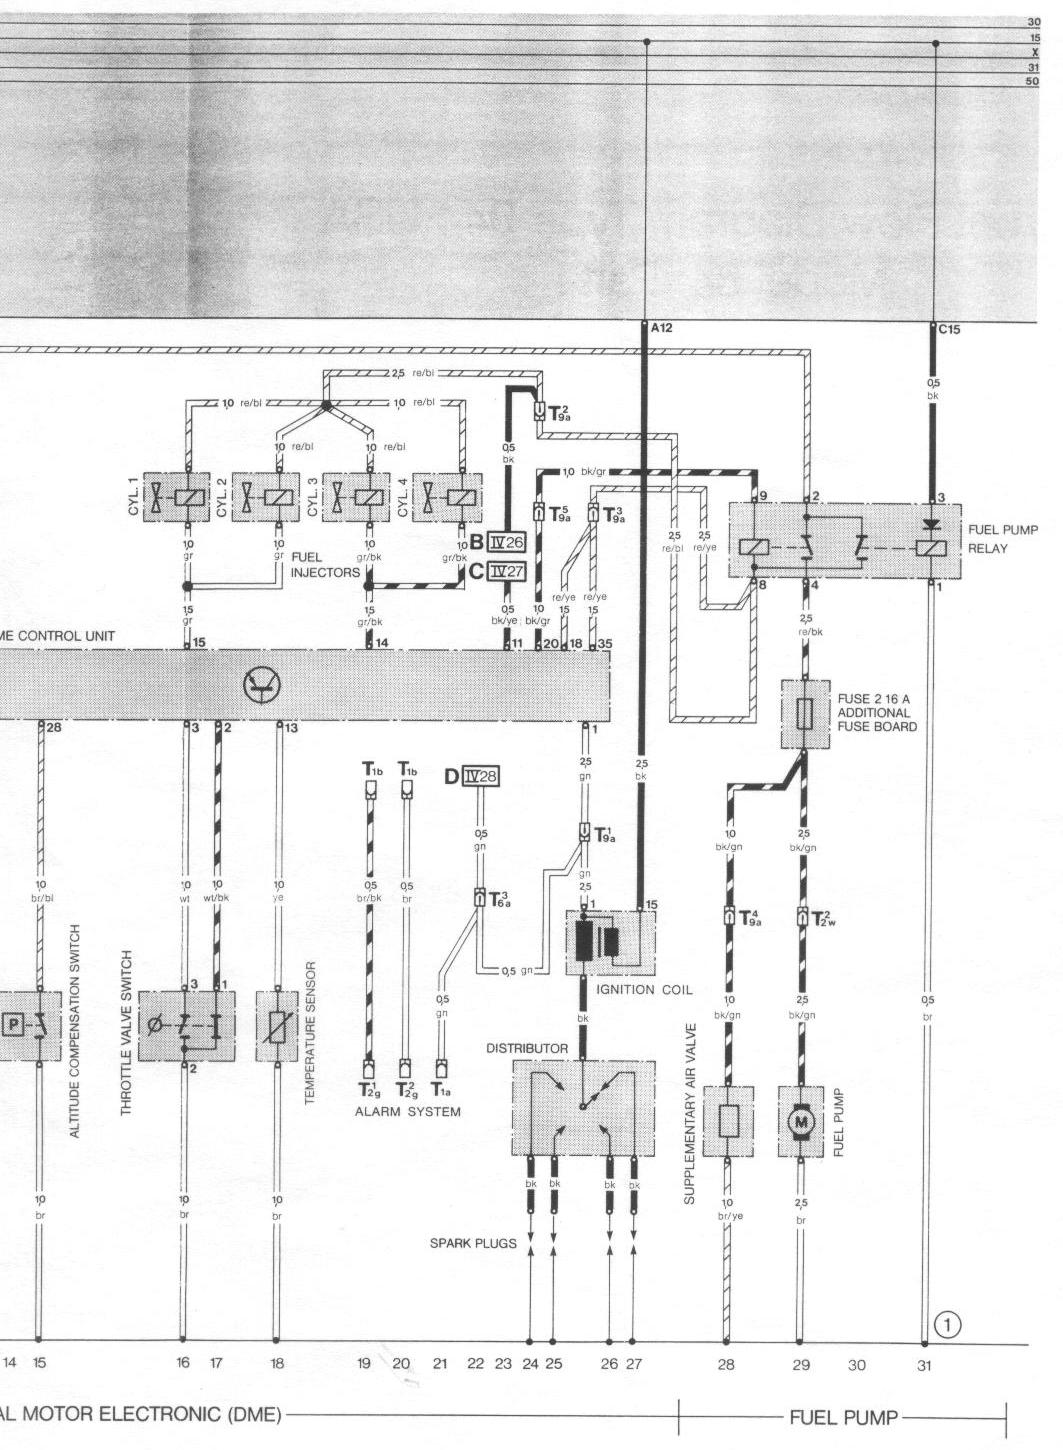 944_84_1_2 pelican parts porsche 924 944 electrical diagrams 1983 porsche 944 fuse box diagram at cos-gaming.co